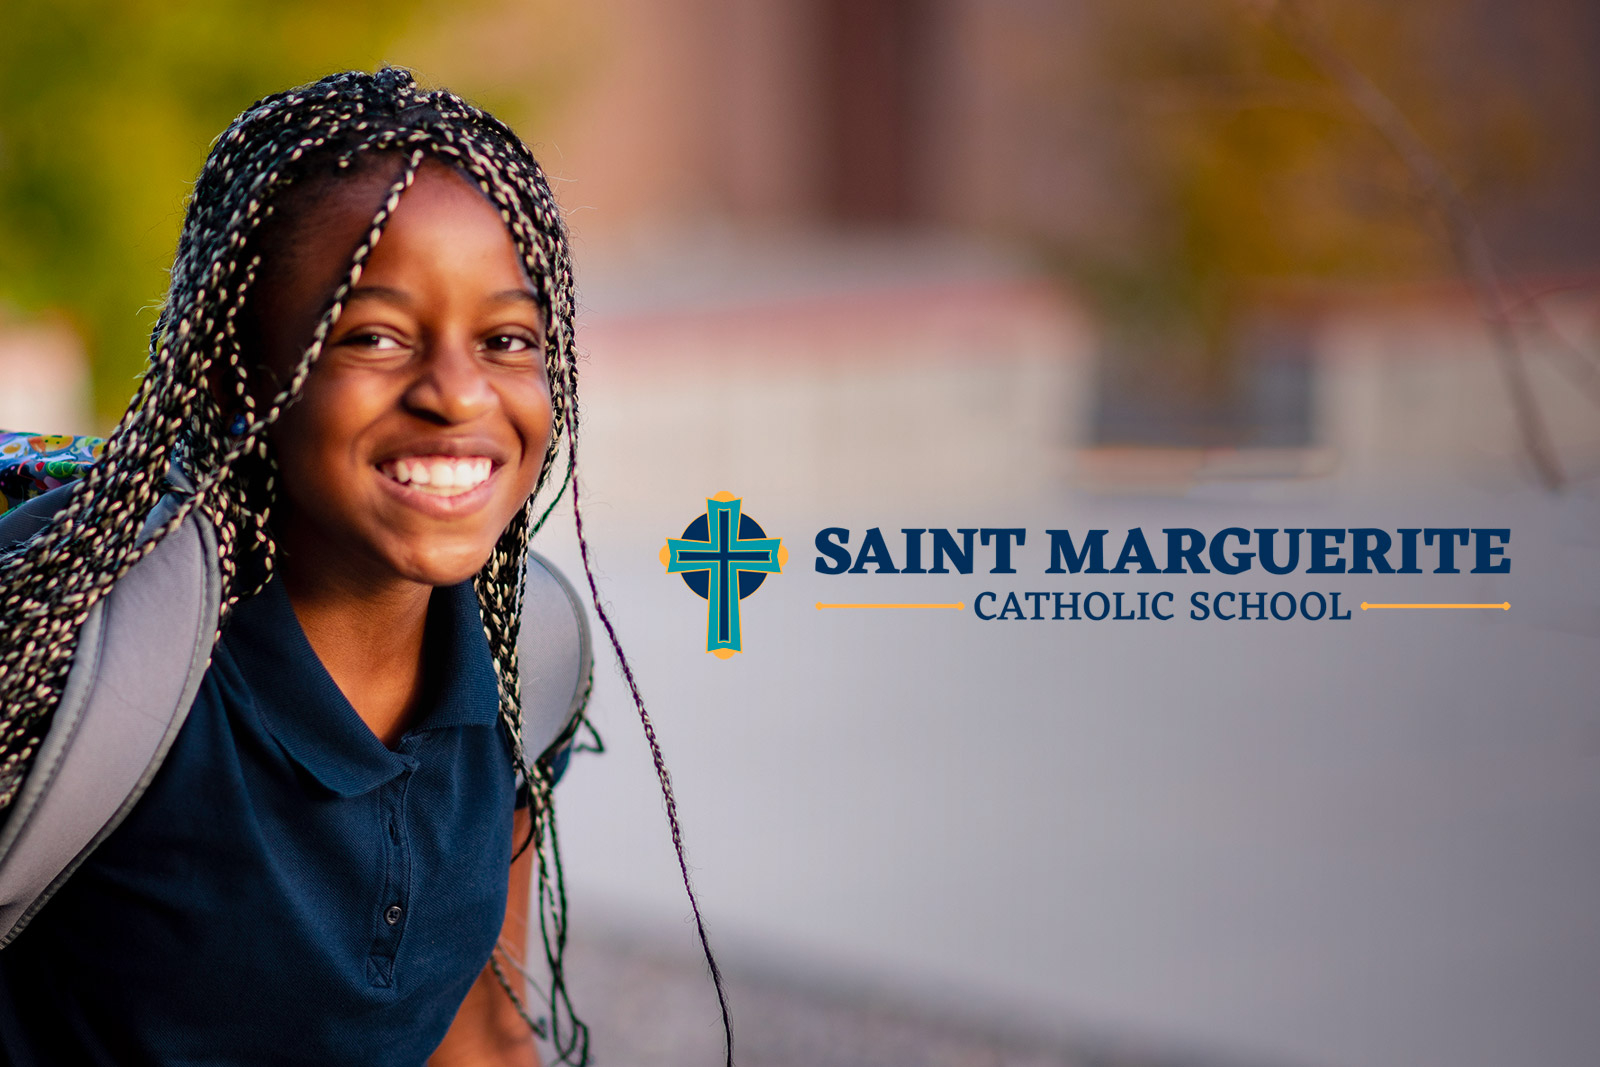 Saint Marguerite Catholic School